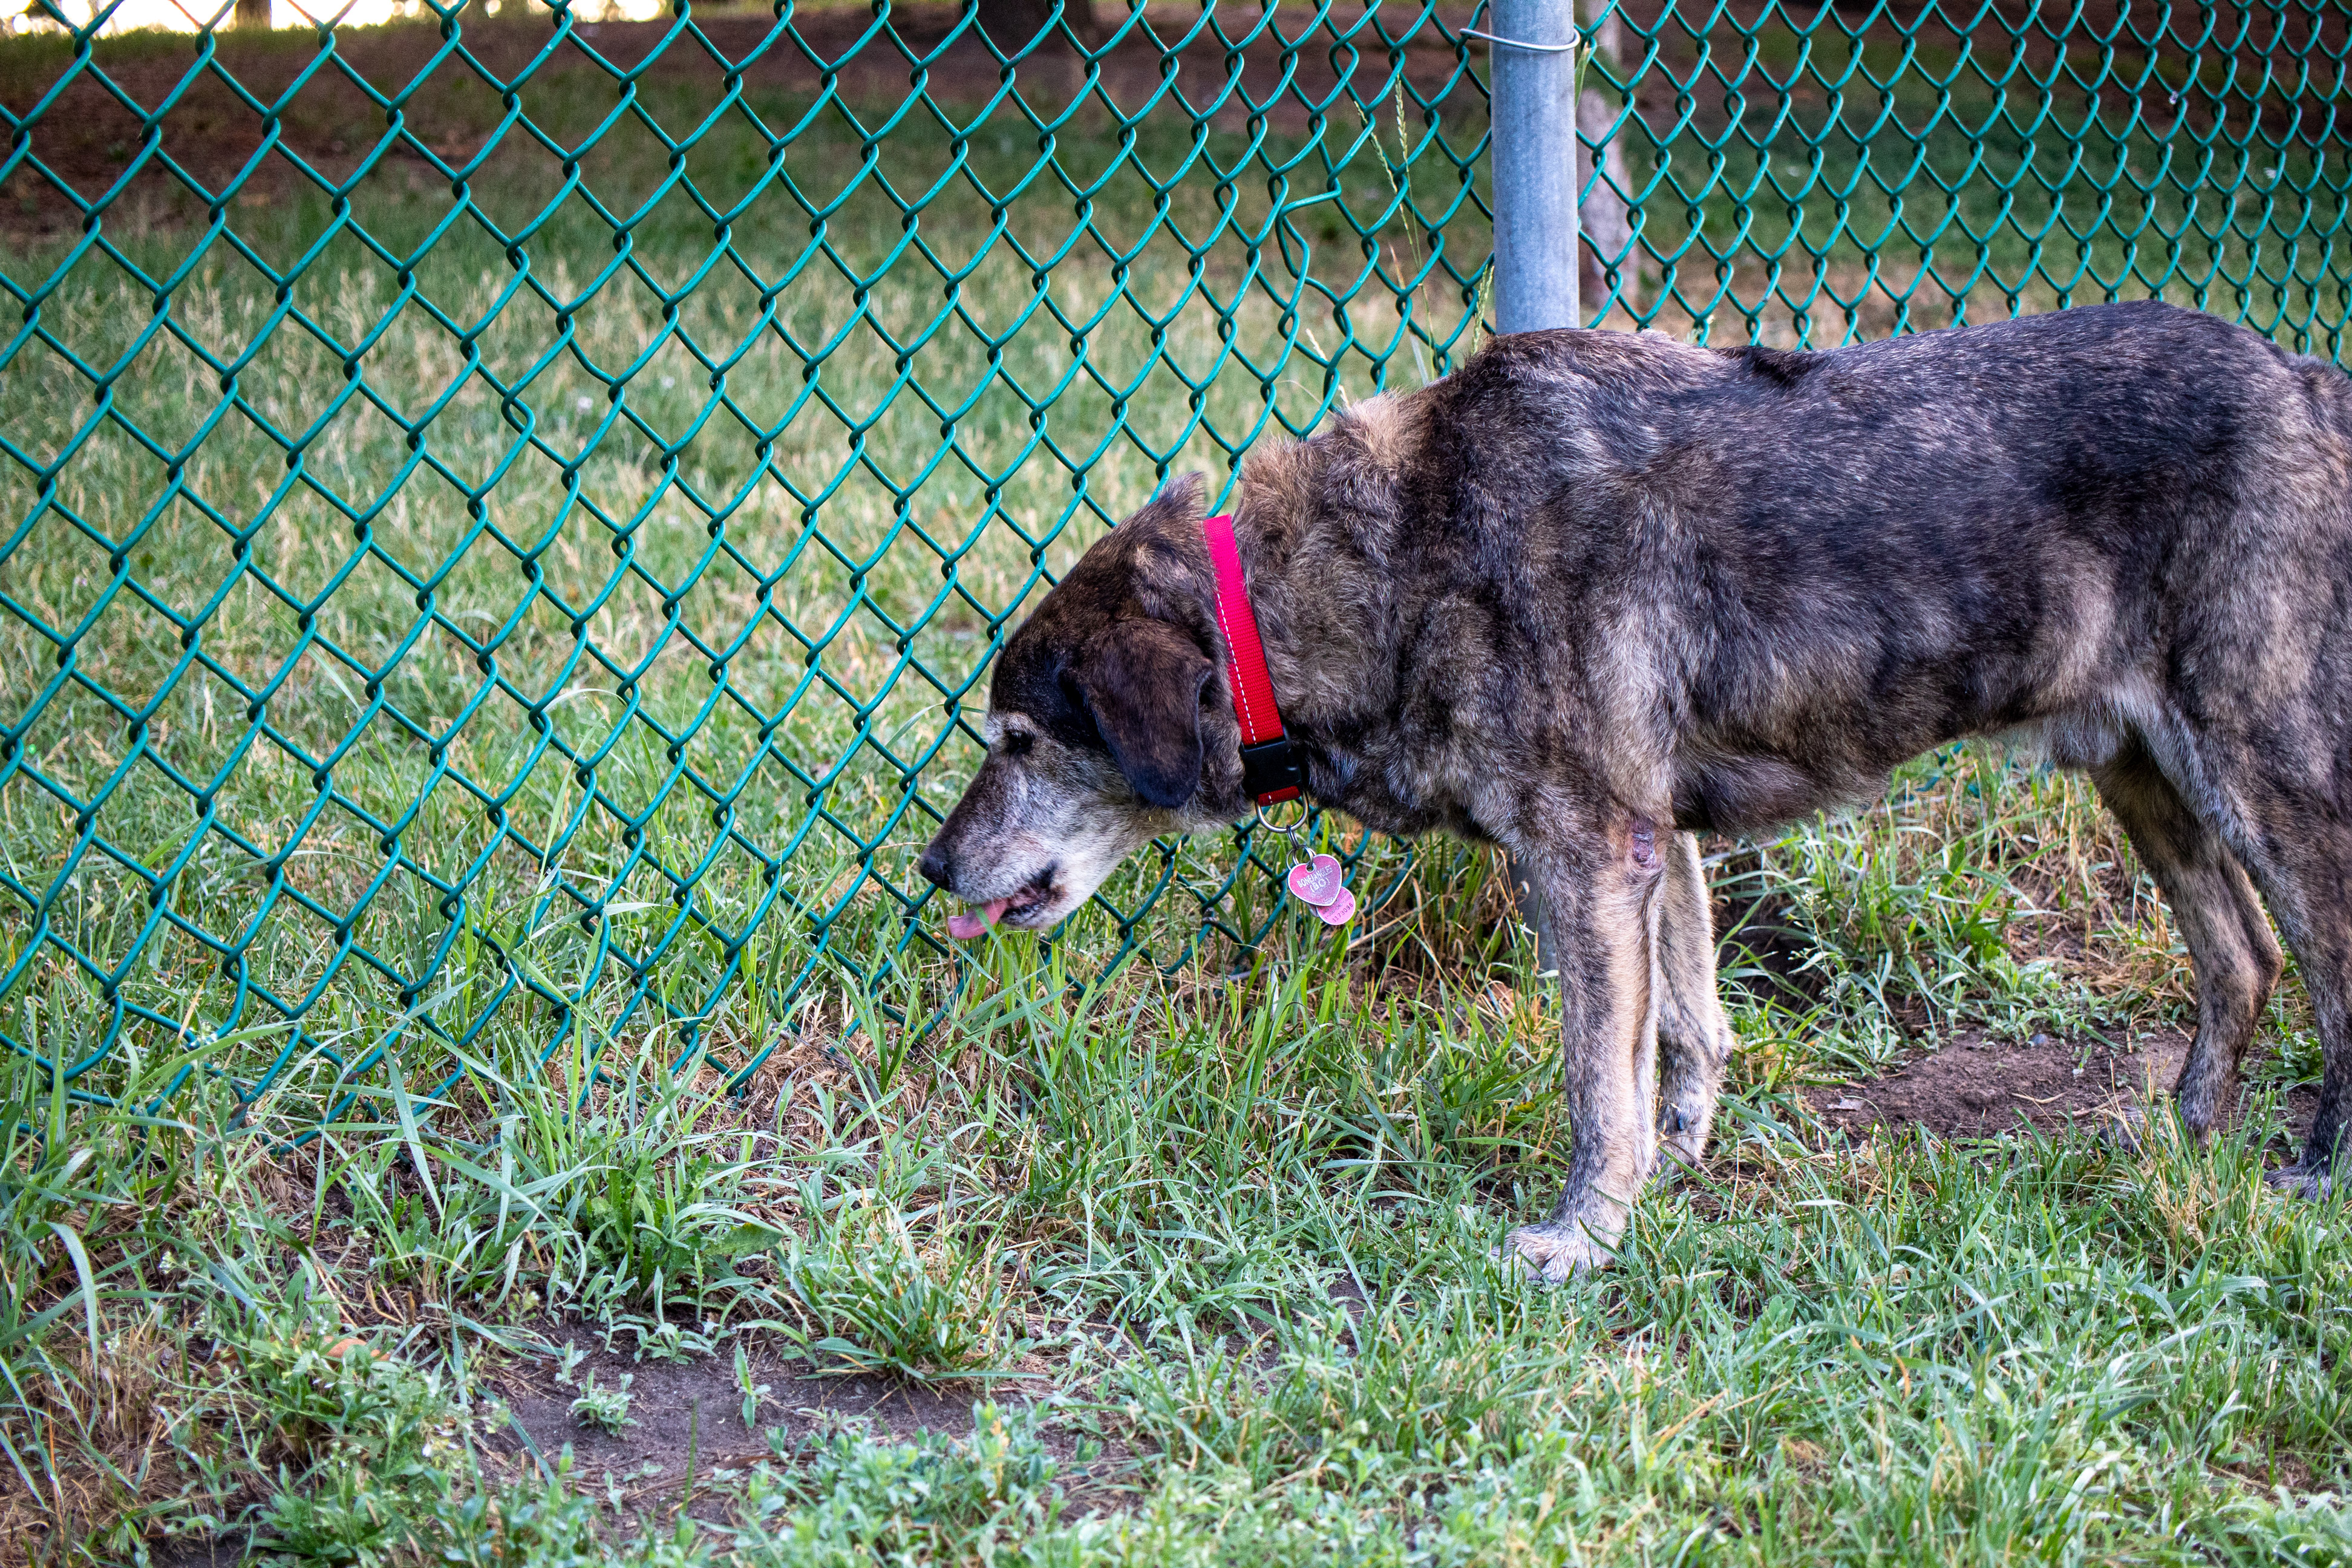 A very silly dog who only goes to dog parks to eat grass around the fence is doing exactly that